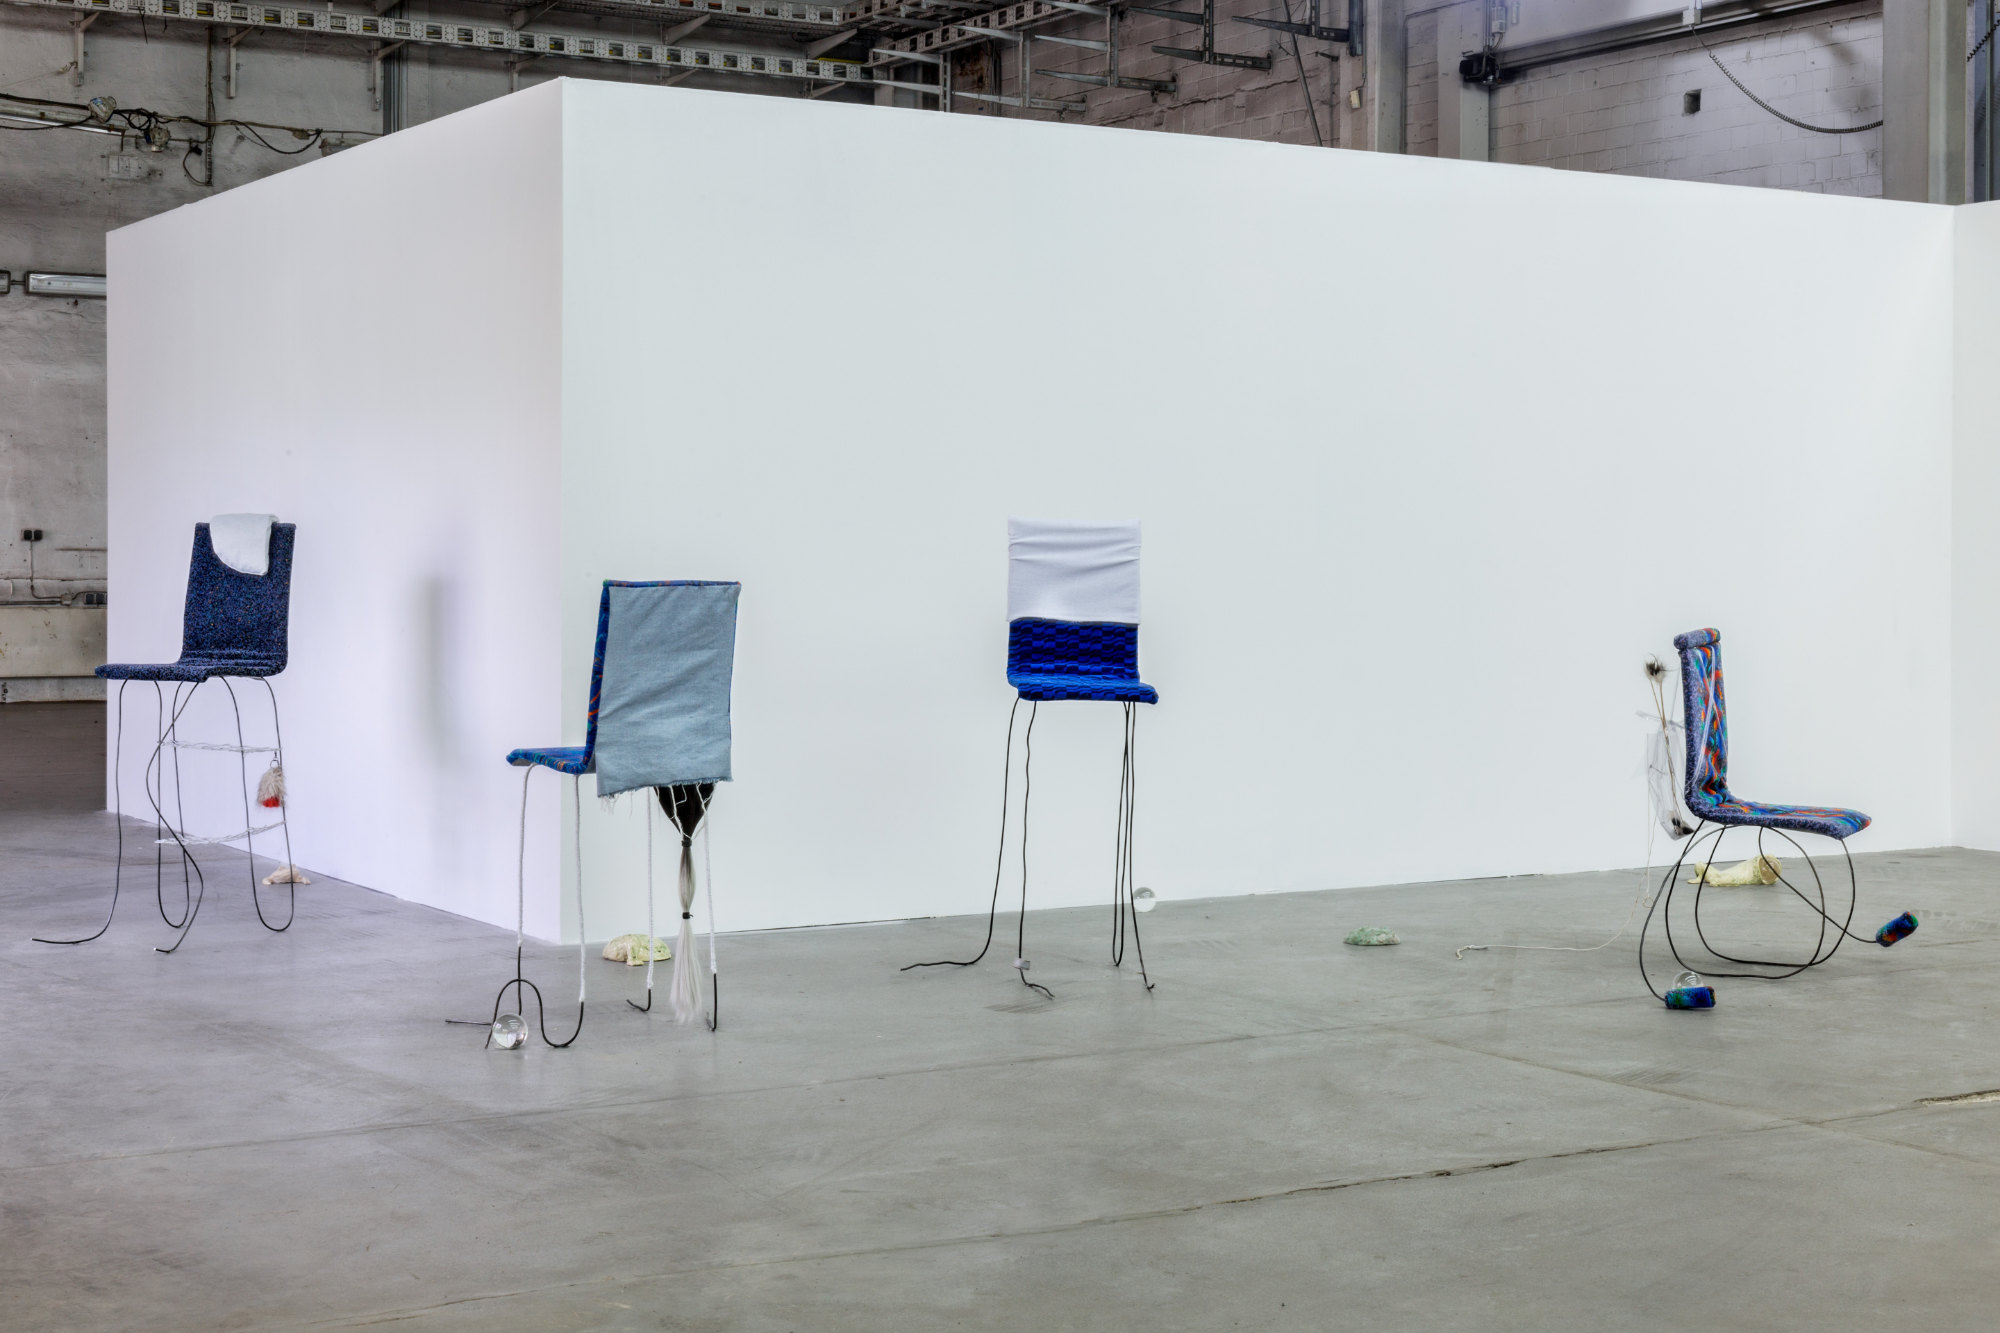 <p>Installation view Nina Wiesnagrotzki, <i>Chinese Seismic Investigations</i>, mixed media, ongoing series since 2016</p>